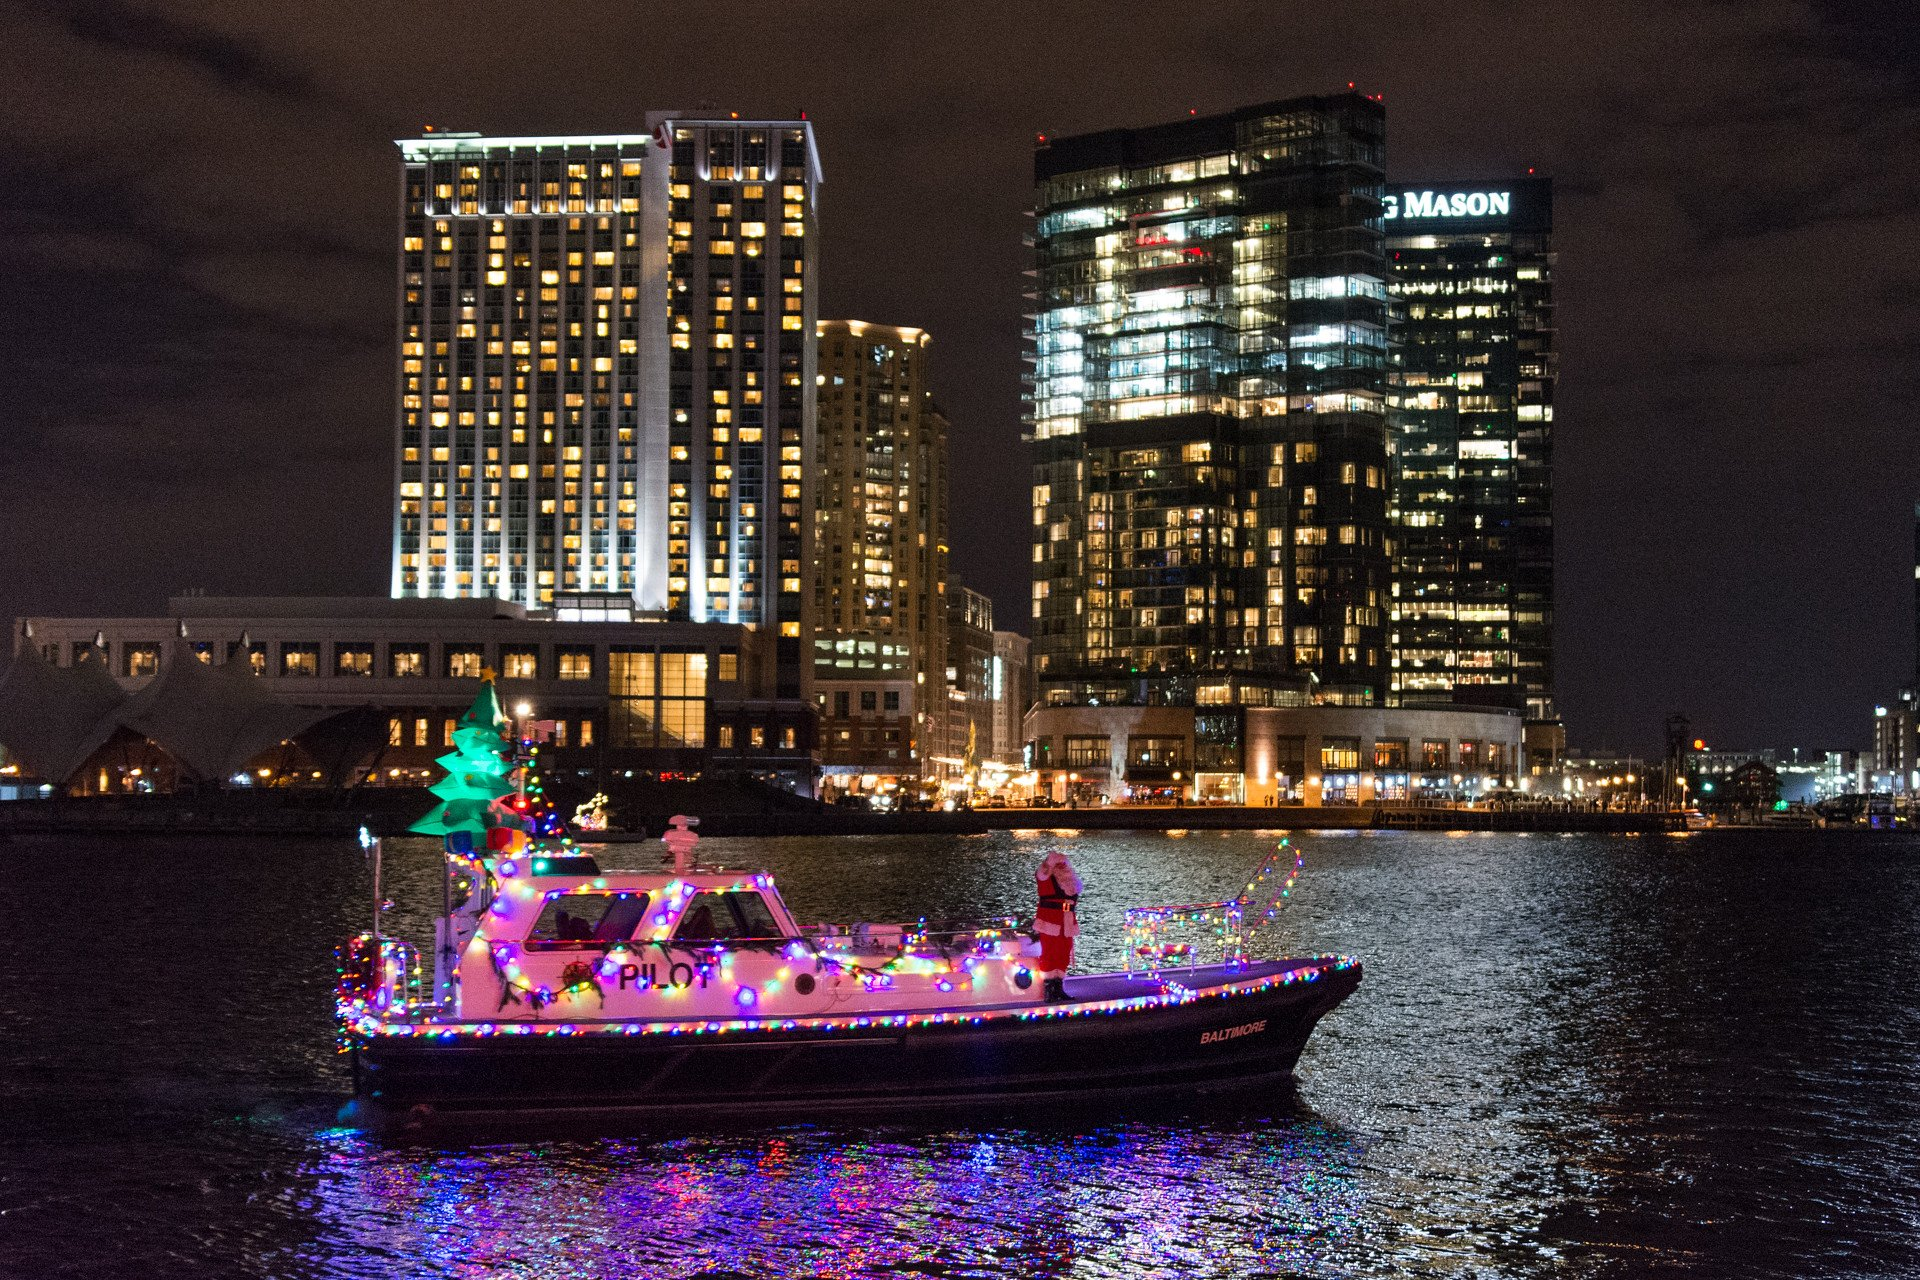 Baltimore Parade of Lighted Boats 2020